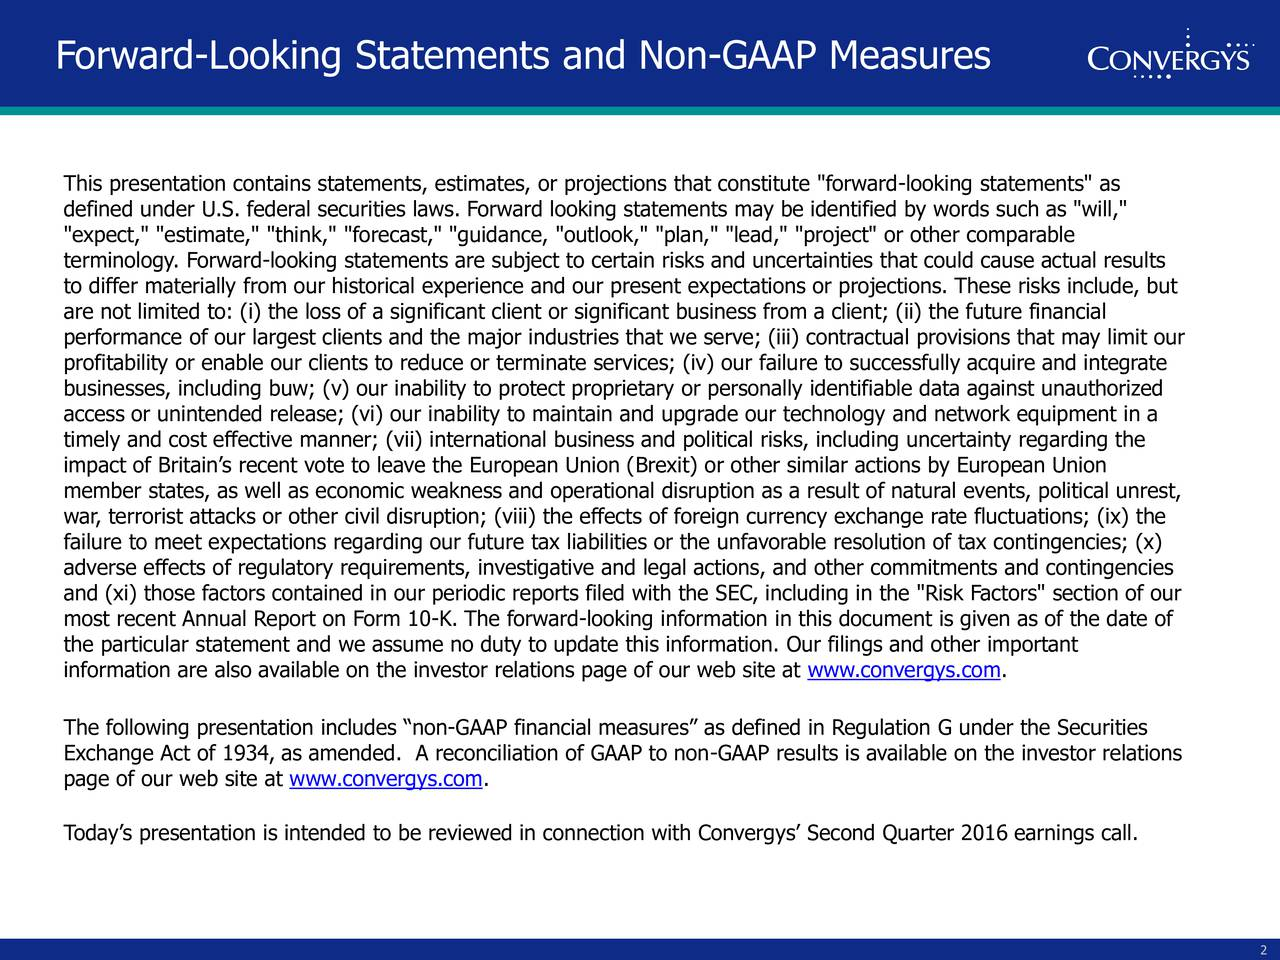 """This presentation contains statements, estimates, or projections that constitute """"forward-looking statements"""" as defined under U.S. federal securities laws. Forward looking statements may be identified by words such as """"will,"""" """"expect,"""" """"estimate,"""" """"think,"""" """"forecast,"""" """"guidance, """"outlook,"""" """"plan,"""" """"lead,"""" """"project"""" or other comparable terminology. Forward-looking statements are subject to certain risks and uncertainties that could cause actual results to differ materially from our historical experience and our present expectations or projections. These risks include, but are not limited to: (i) the loss of a significant client or significant business from a client; (ii) the future financial performance of our largest clients and the major industries that we serve; (iii) contractual provisions that may limit our profitability or enable our clients to reduce or terminate services; (iv) our failure to successfully acquire and integrate businesses, including buw; (v) our inability to protect proprietary or personally identifiable data against unauthorized access or unintended release; (vi) our inability to maintain and upgrade our technology and network equipment in a timely and cost effective manner; (vii) international business and political risks, including uncertainty regarding the impact of Britains recent vote to leave the European Union (Brexit) or other similar actions by European Union member states, as well as economic weakness and operational disruption as a result of natural events, political unrest, war, terrorist attacks or other civil disruption; (viii) the effects of foreign currency exchange rate fluctuations; (ix) the failure to meet expectations regarding our future tax liabilities or the unfavorable resolution of tax contingencies; (x) adverse effects of regulatory requirements, investigative and legal actions, and other commitments and contingencies and (xi) those factors contained in our periodic reports filed with the SEC, including in the """"Risk """